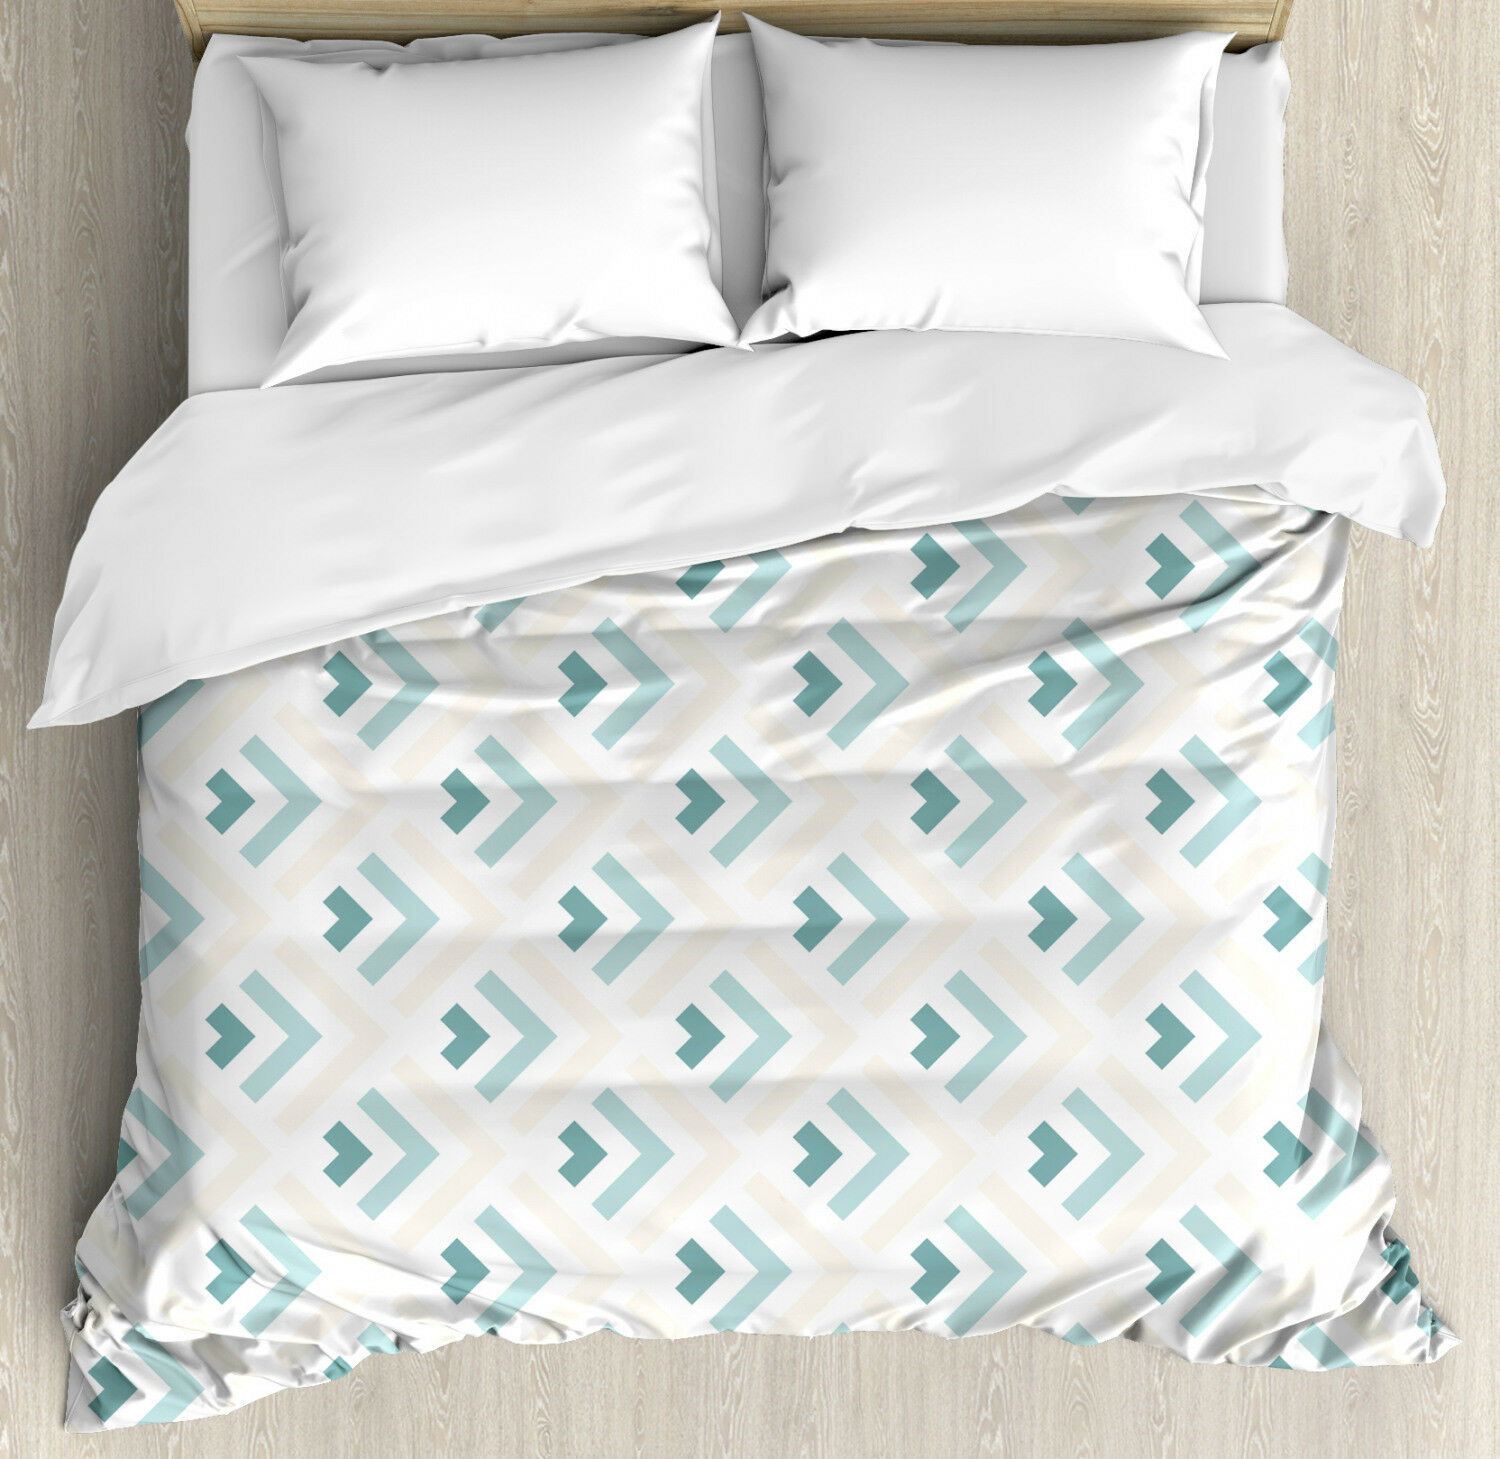 Retro Duvet Cover Set with Pillow Shams Minimalist Arrows Artful Print